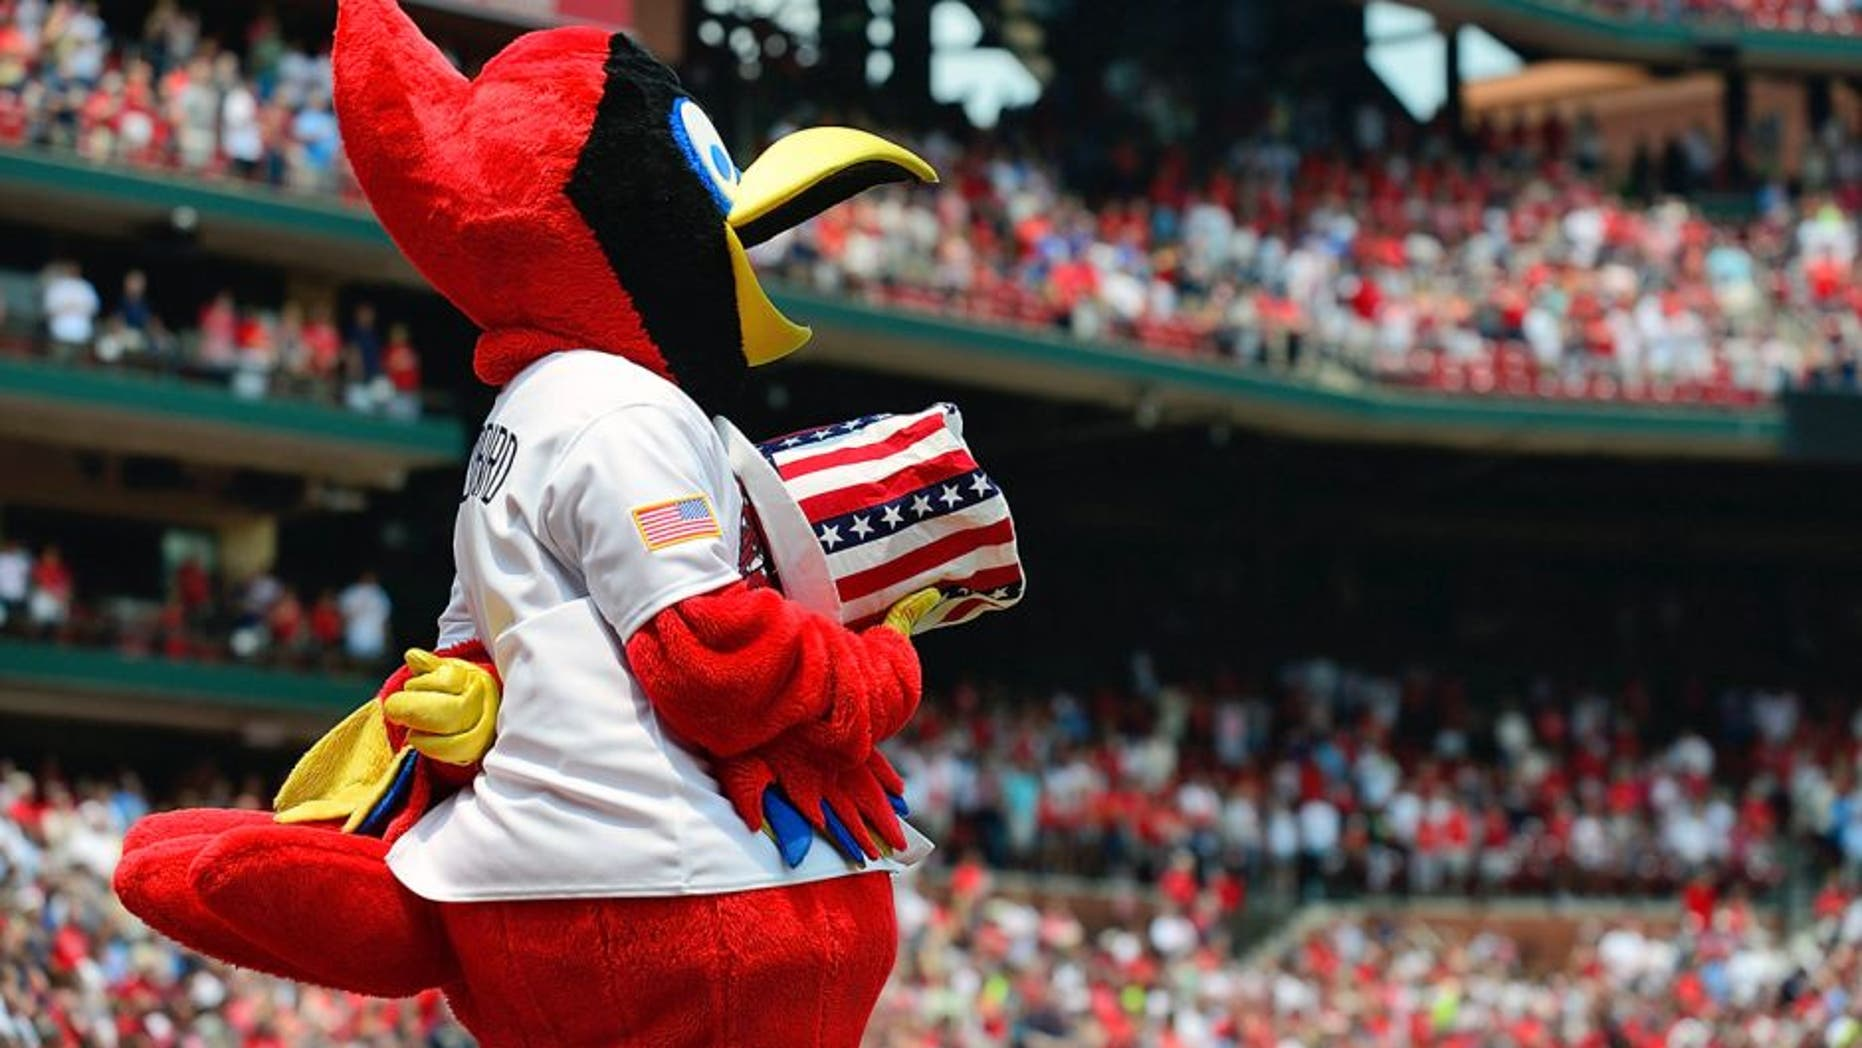 ST. LOUIS, MO - JULY 4: St. Louis Cardinals mascot Fredbird listens to the National Anthem before a game against the San Diego Padres at Busch Stadium on July 4, 2015 in St. Louis, Missouri. (Photo by Jeff Curry/Getty Images)